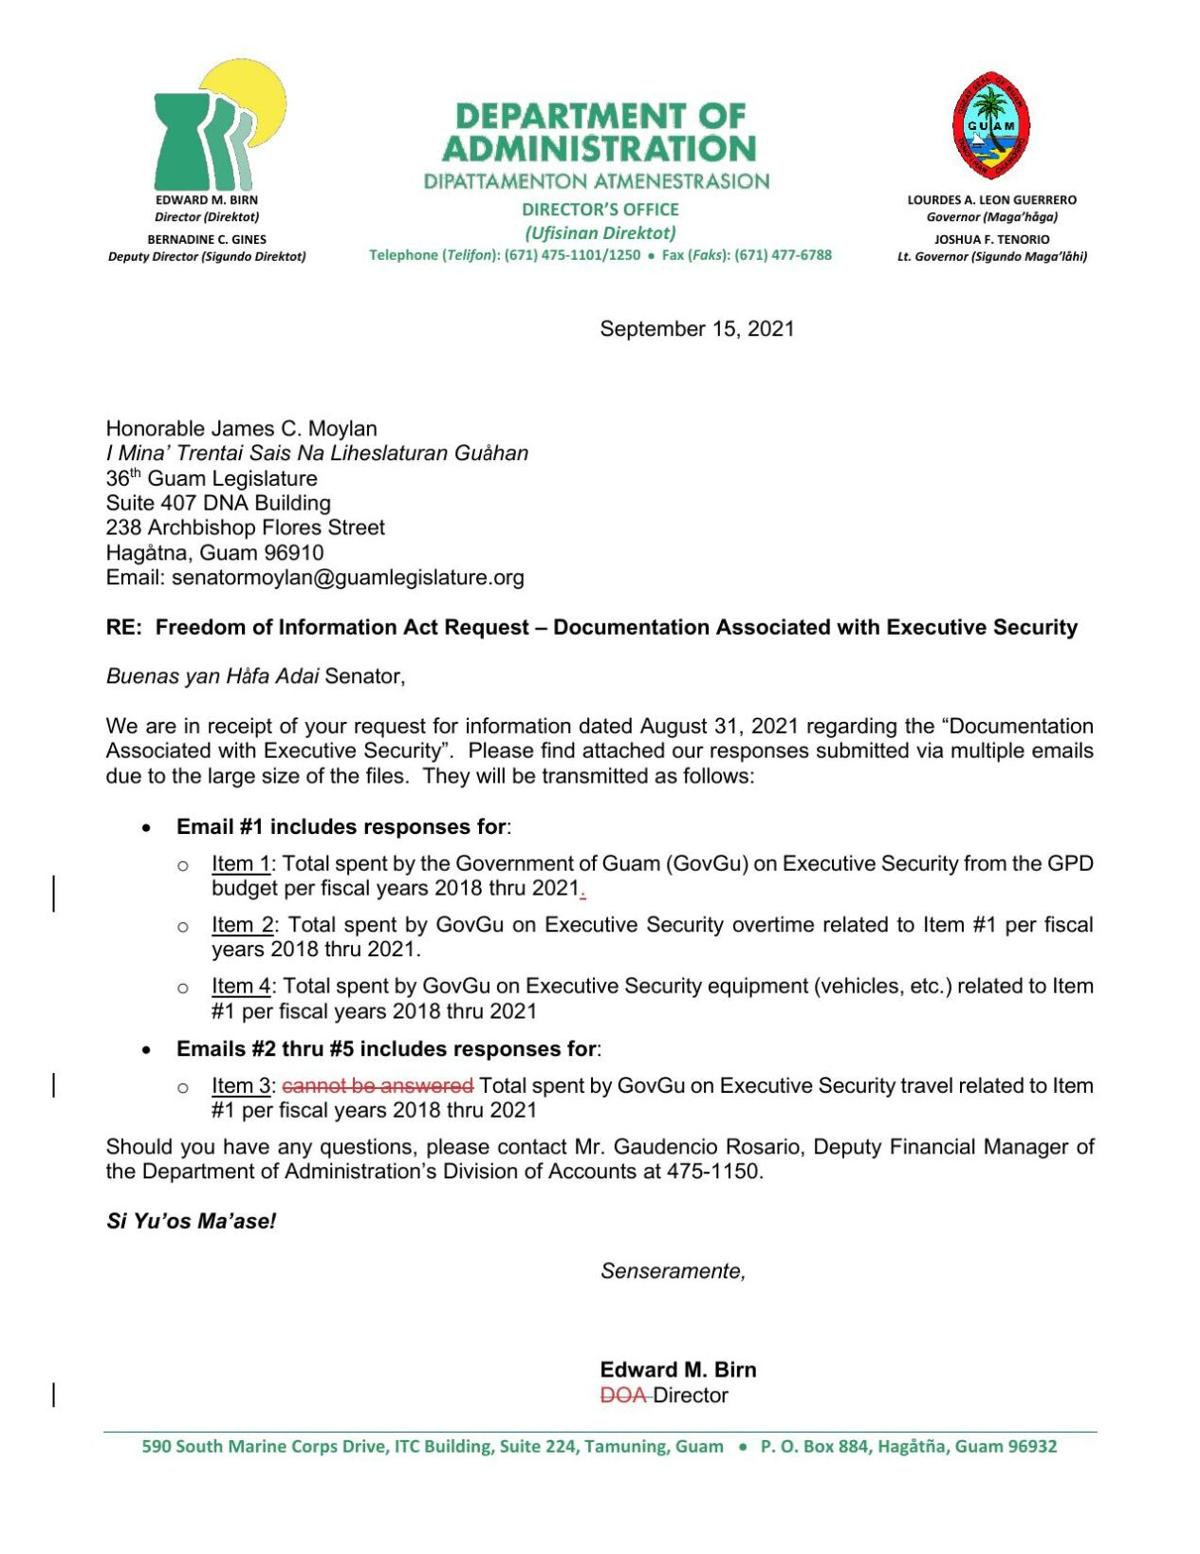 DOA FOIA response to executive security costs request 1